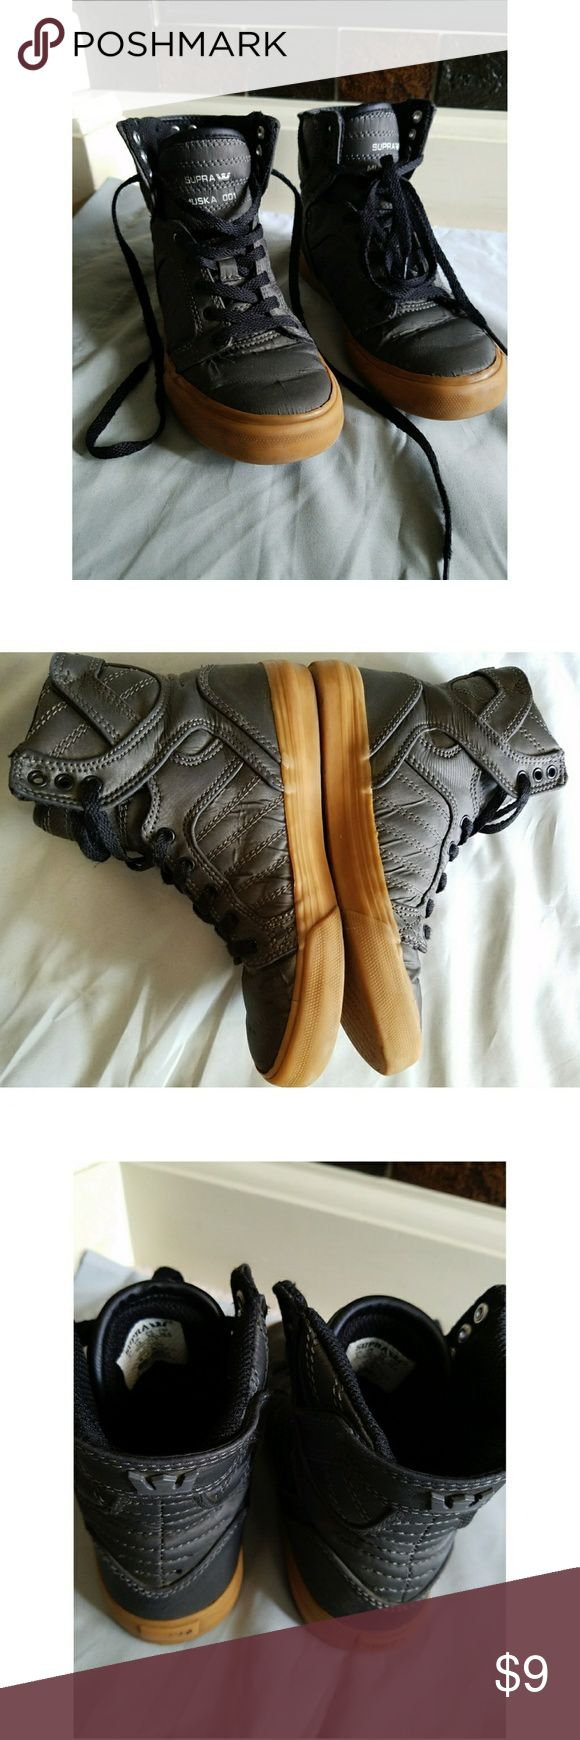 🅱2️⃣G1️⃣FREE ✴️ SUPRA High-top Sneakers ✴️ 💥BUNDLE & SAVE 20% off! Add 2+ items in my closet!!💥  Metallic dark grey coated canvas illuminates this sneakers w/ signiture style👌  📌Size 1 (Little Boy) 📌Worn & Very much loved by my son, just few scratches on the sides but NOTHING MAJOR 😁 📌VERY CLEAN INTERIOR & EXTERIOR. CLEAN SHOE LACES👌 📌Removable padded EVA footbed.  🚭SMOKE FREE & PET FREE HOME🔅  🤝REASONABLE OFFERS ARE WELCOME🤗🤝  🛂SAME DAY SHIPPING IF ORDER IS PLACED BY 9AM🕘…